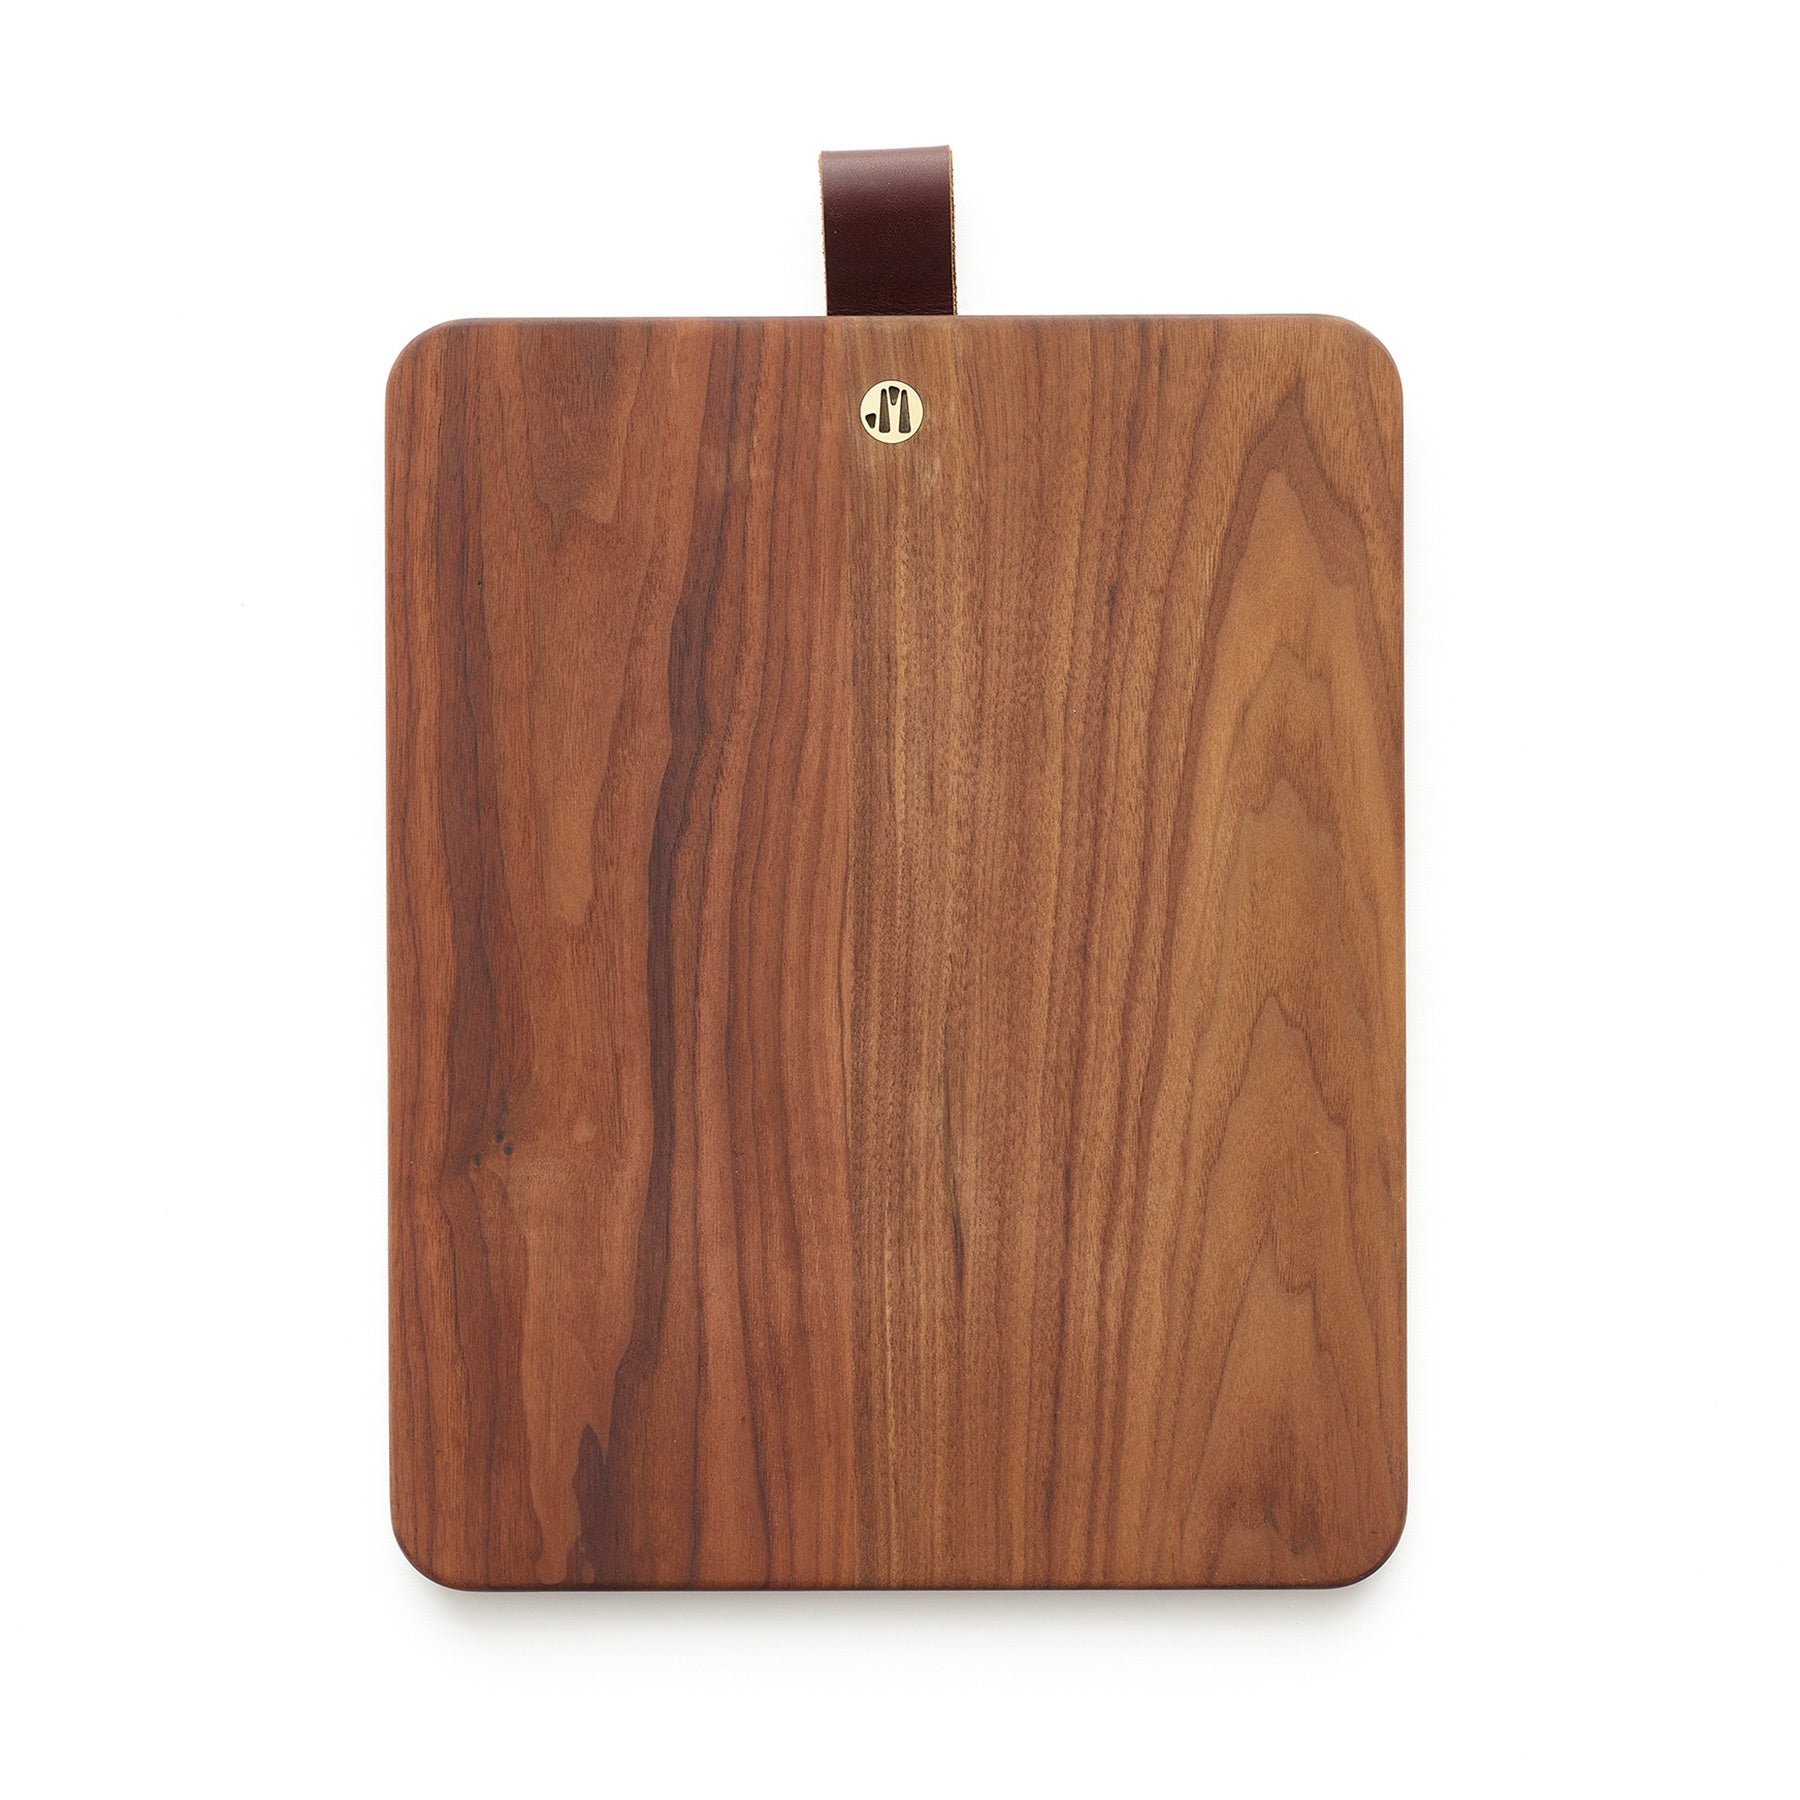 Rectangular Walnut Cutting Board with Leather Tab Zoom Image 1